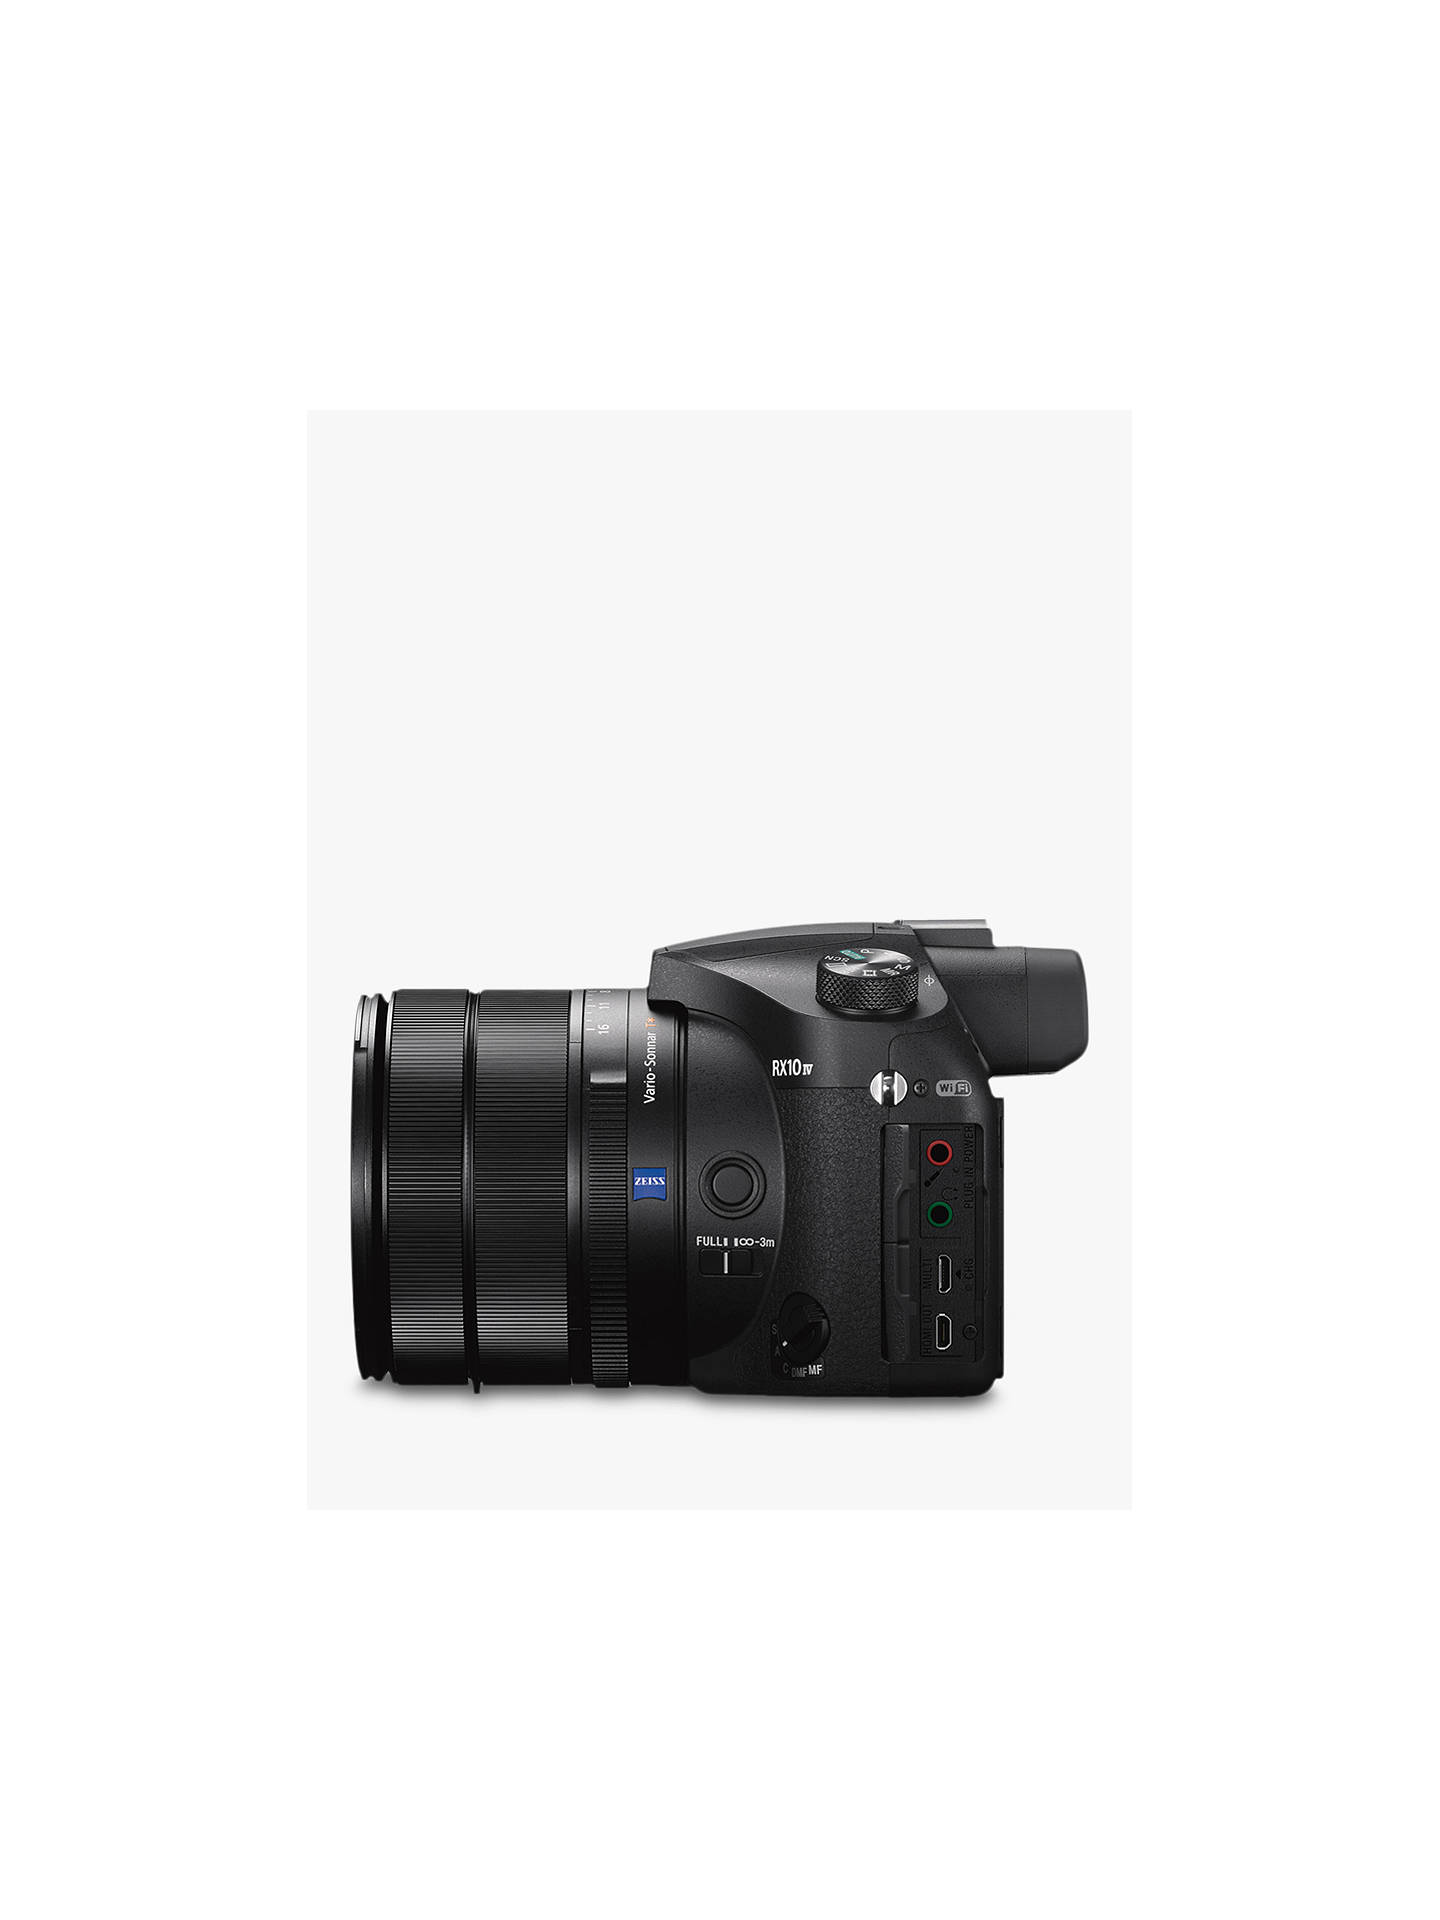 Sony Cyber-Shot DSC-RX10 IV Bridge Camera, 4K Ultra HD, 20 1MP, 25x Optical  Zoom, Wi-Fi, NFC, EVF, 3